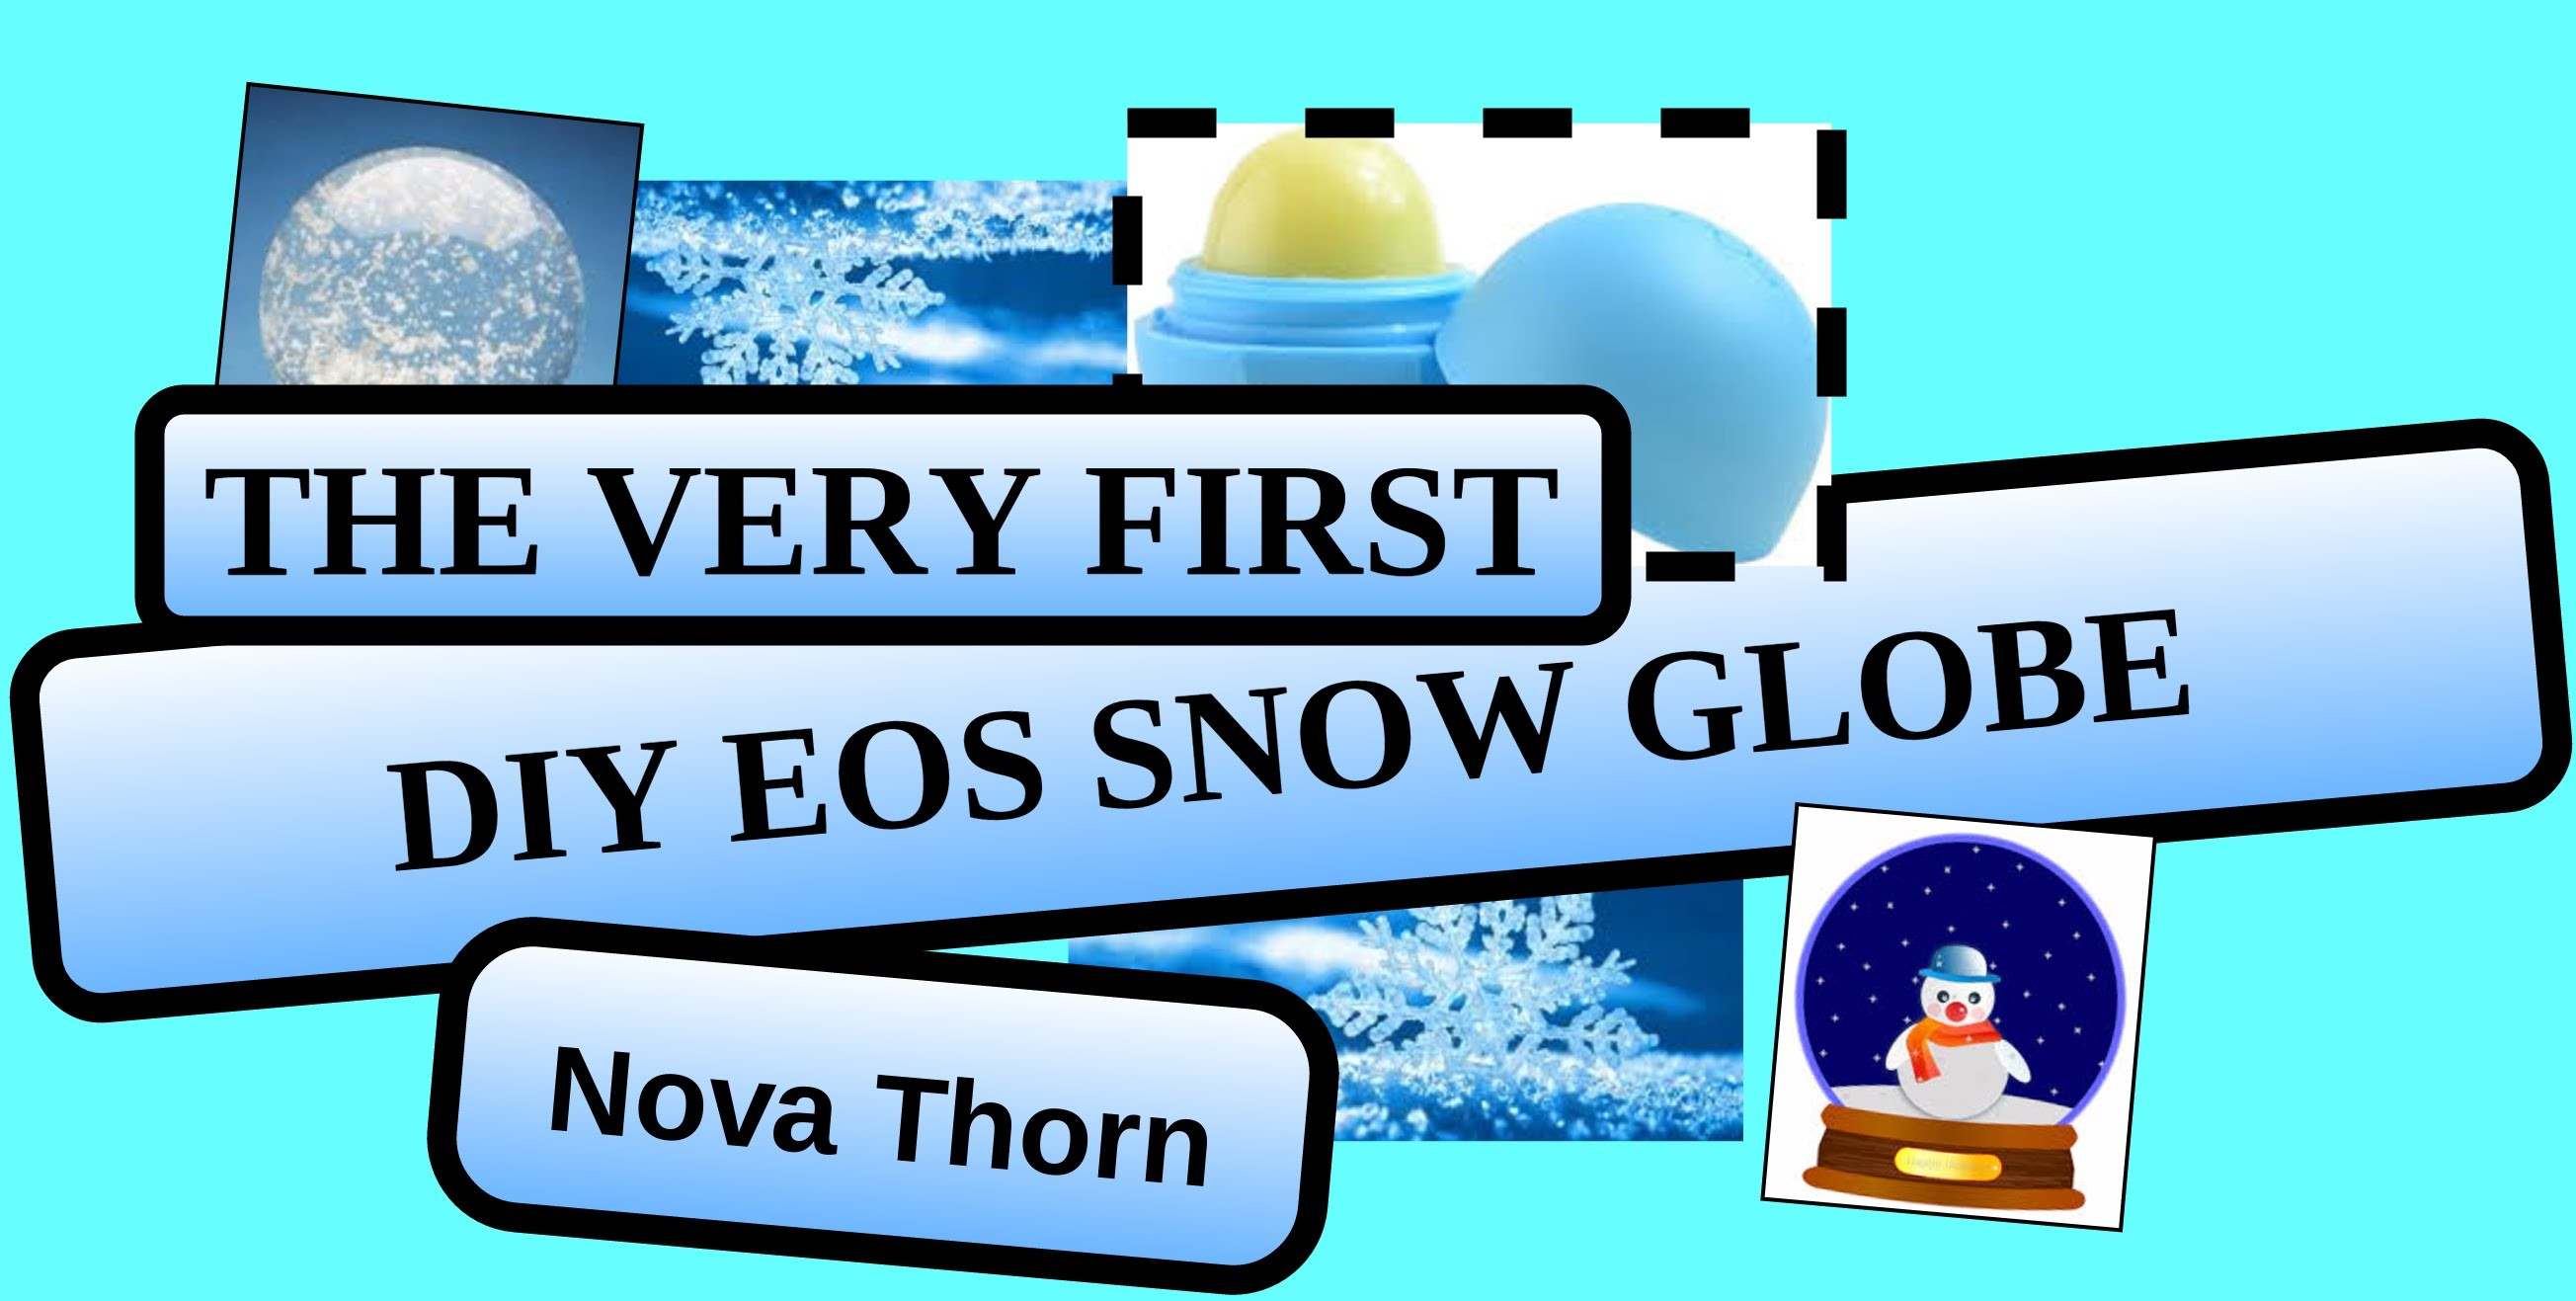 DIY EOS SNOW GLOBE